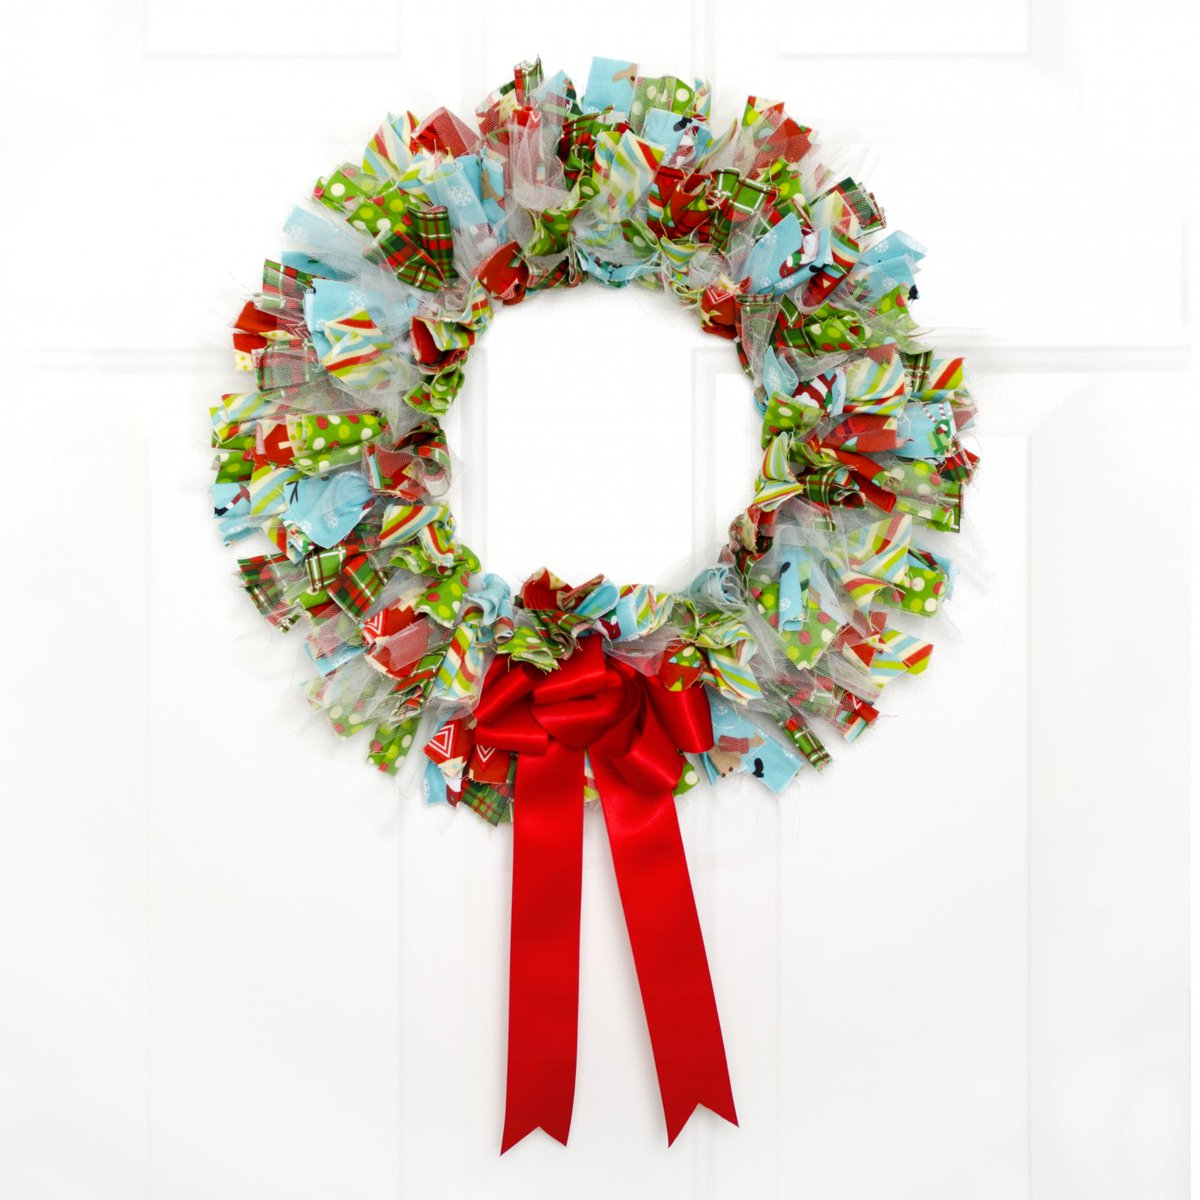 Quilt Inspiration On Twitter Nothing Says Welcome More Than A Festive Fluffy Door Wreath Made From Fat Quarter Strips Free No Sew Christmas Wreath Tutorial From Fabric Editions Https T Co 9lm51du9cv Https T Co Zwltkfror0